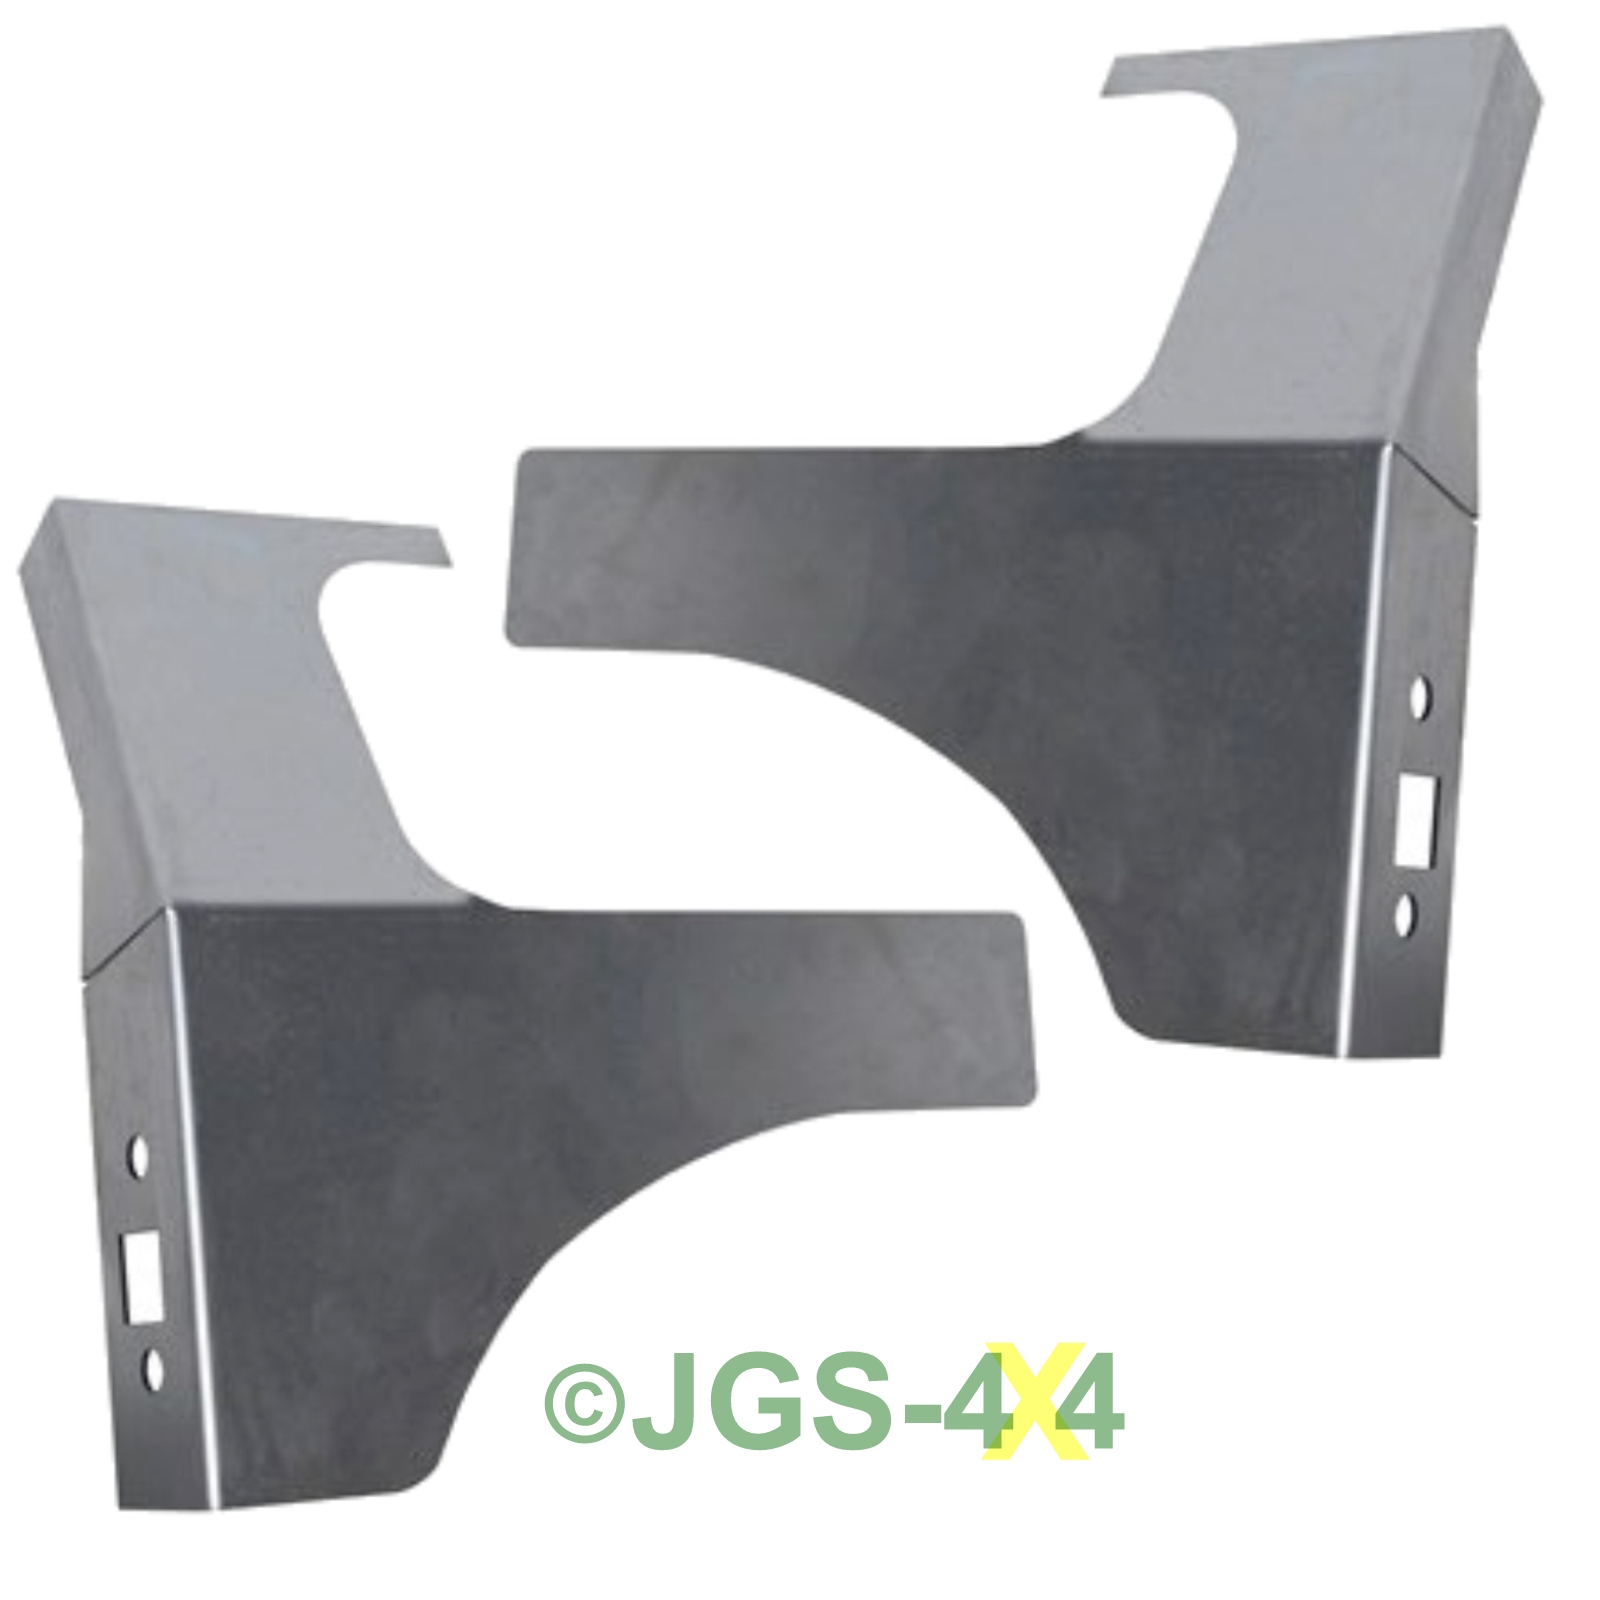 Land Rover Defender Upper Bulkhead Repair Panel Sections